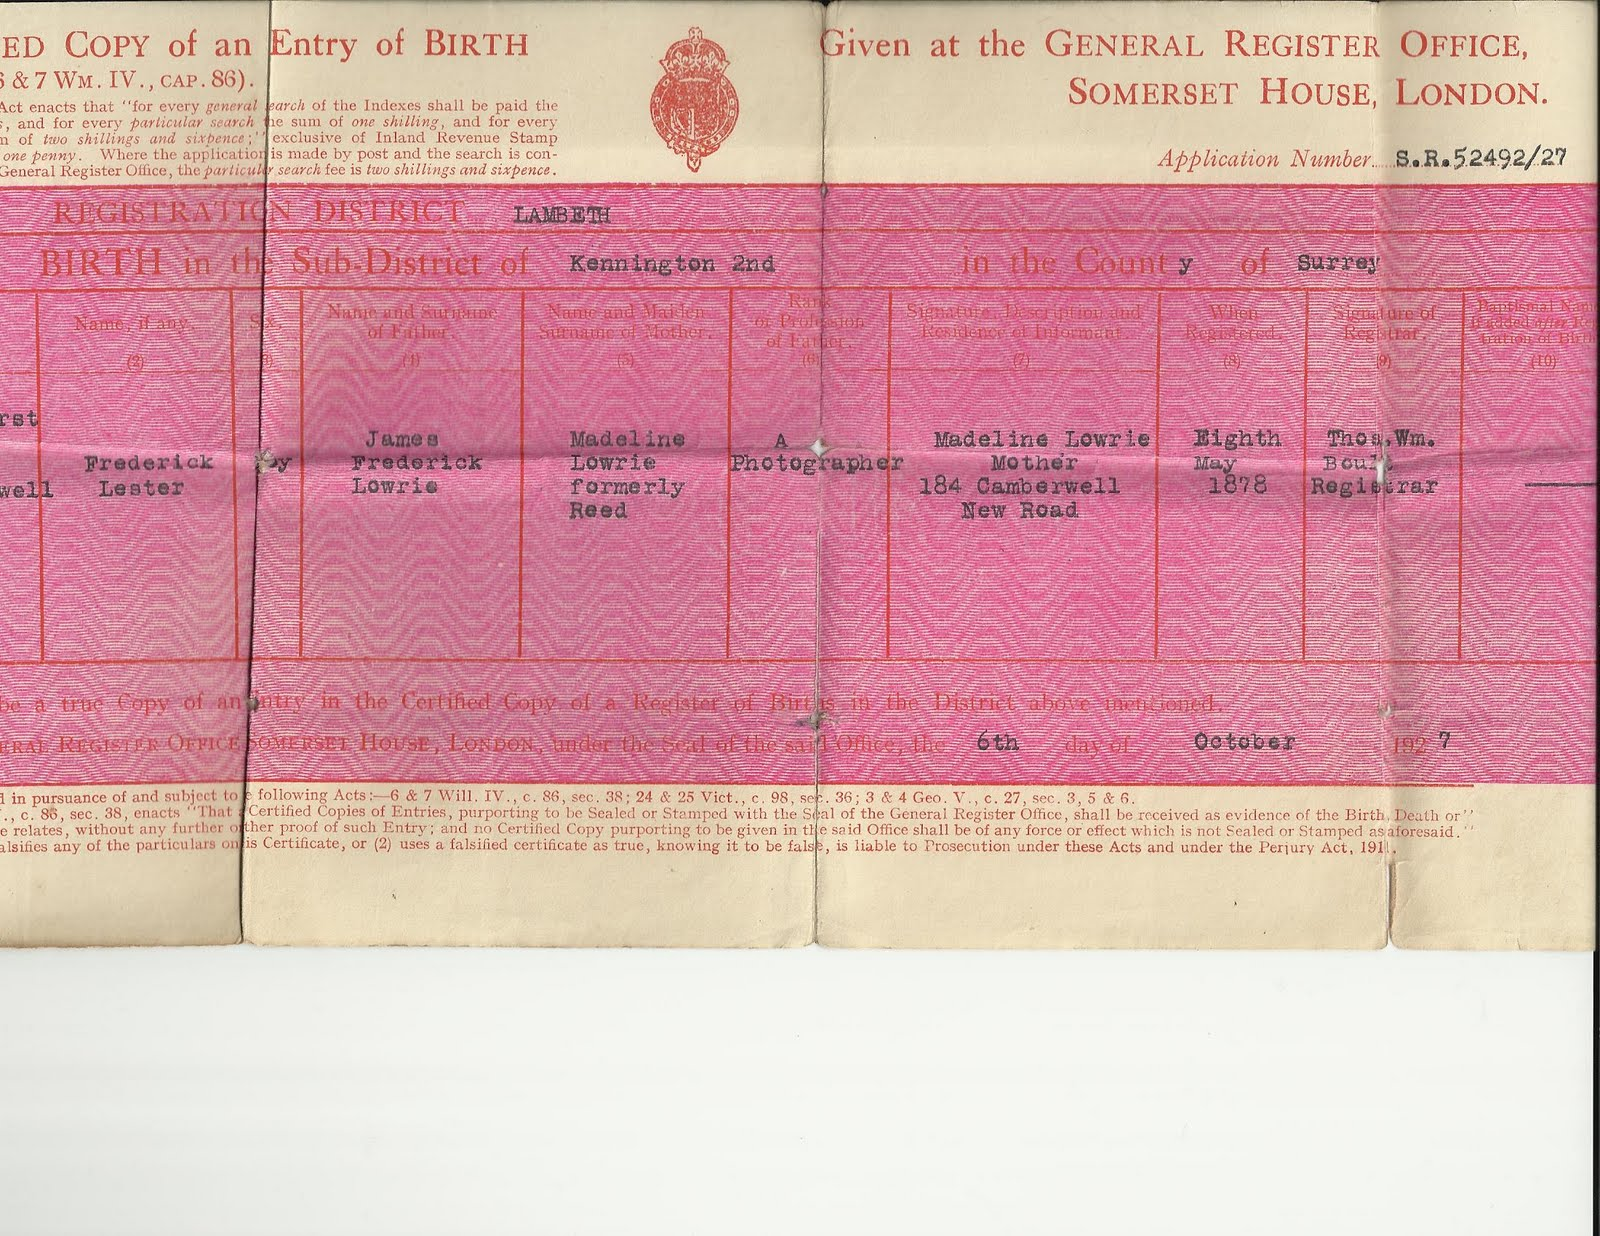 Remember a family history blog the value of sharing birth certificate of frederick lester lowrie husband of olga whoever you are lowrie aiddatafo Choice Image